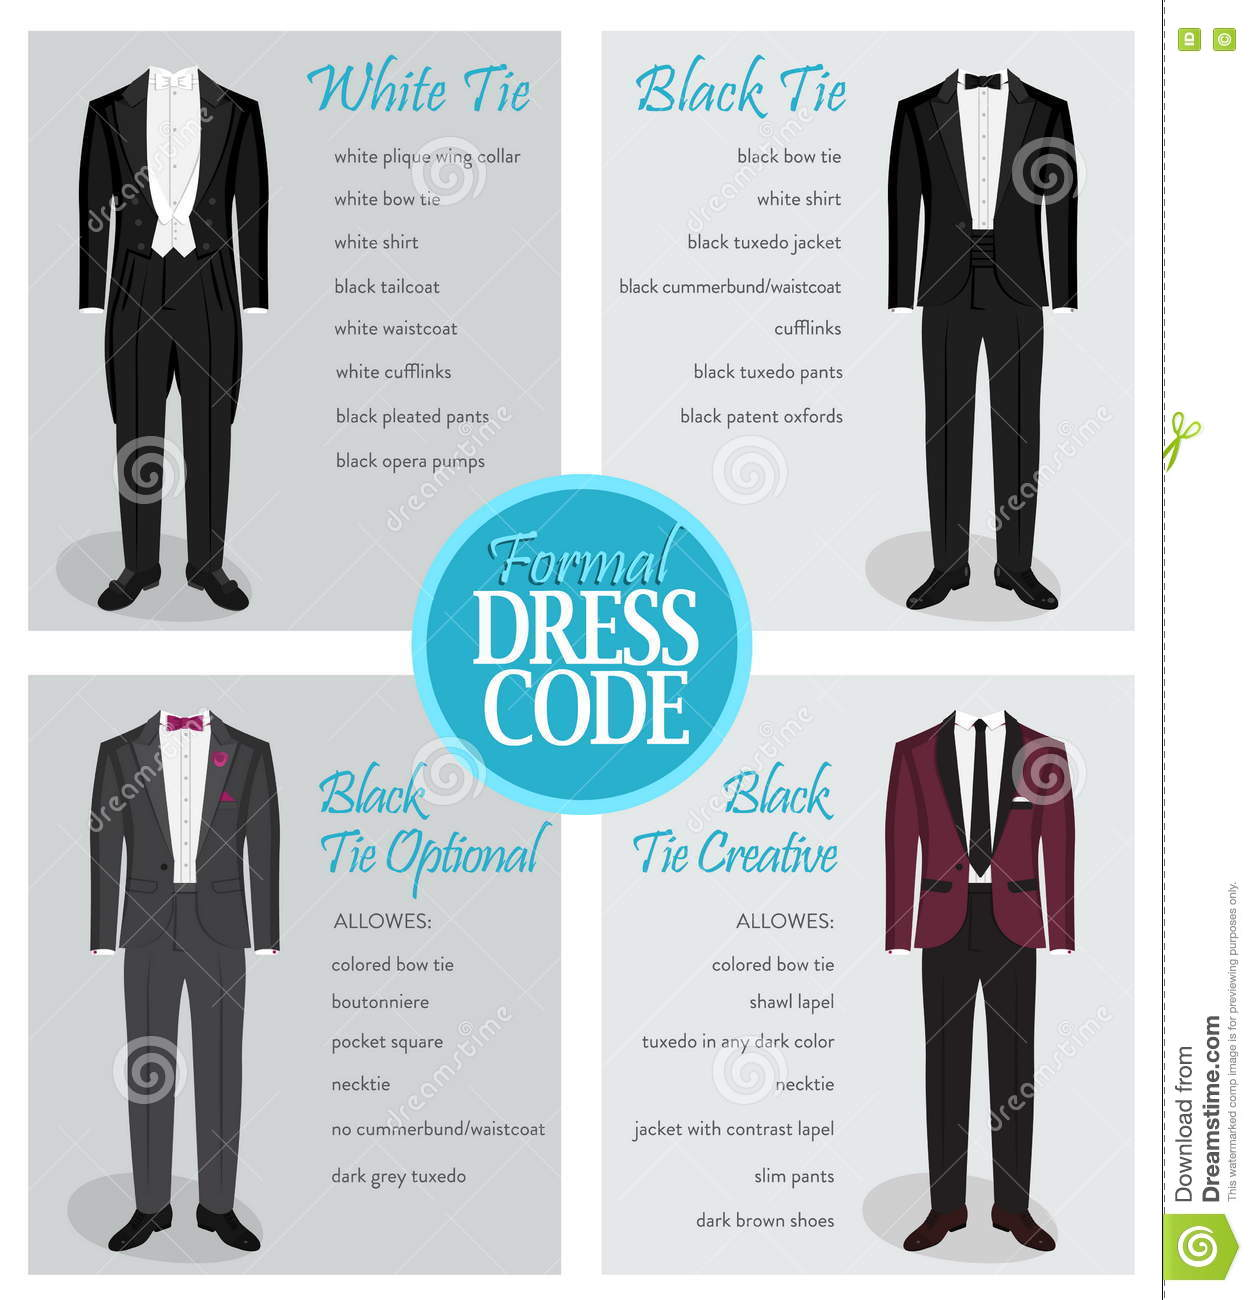 2dee5c763 Formal Dress Code Guide For Men Stock Vector - Illustration of opera ...